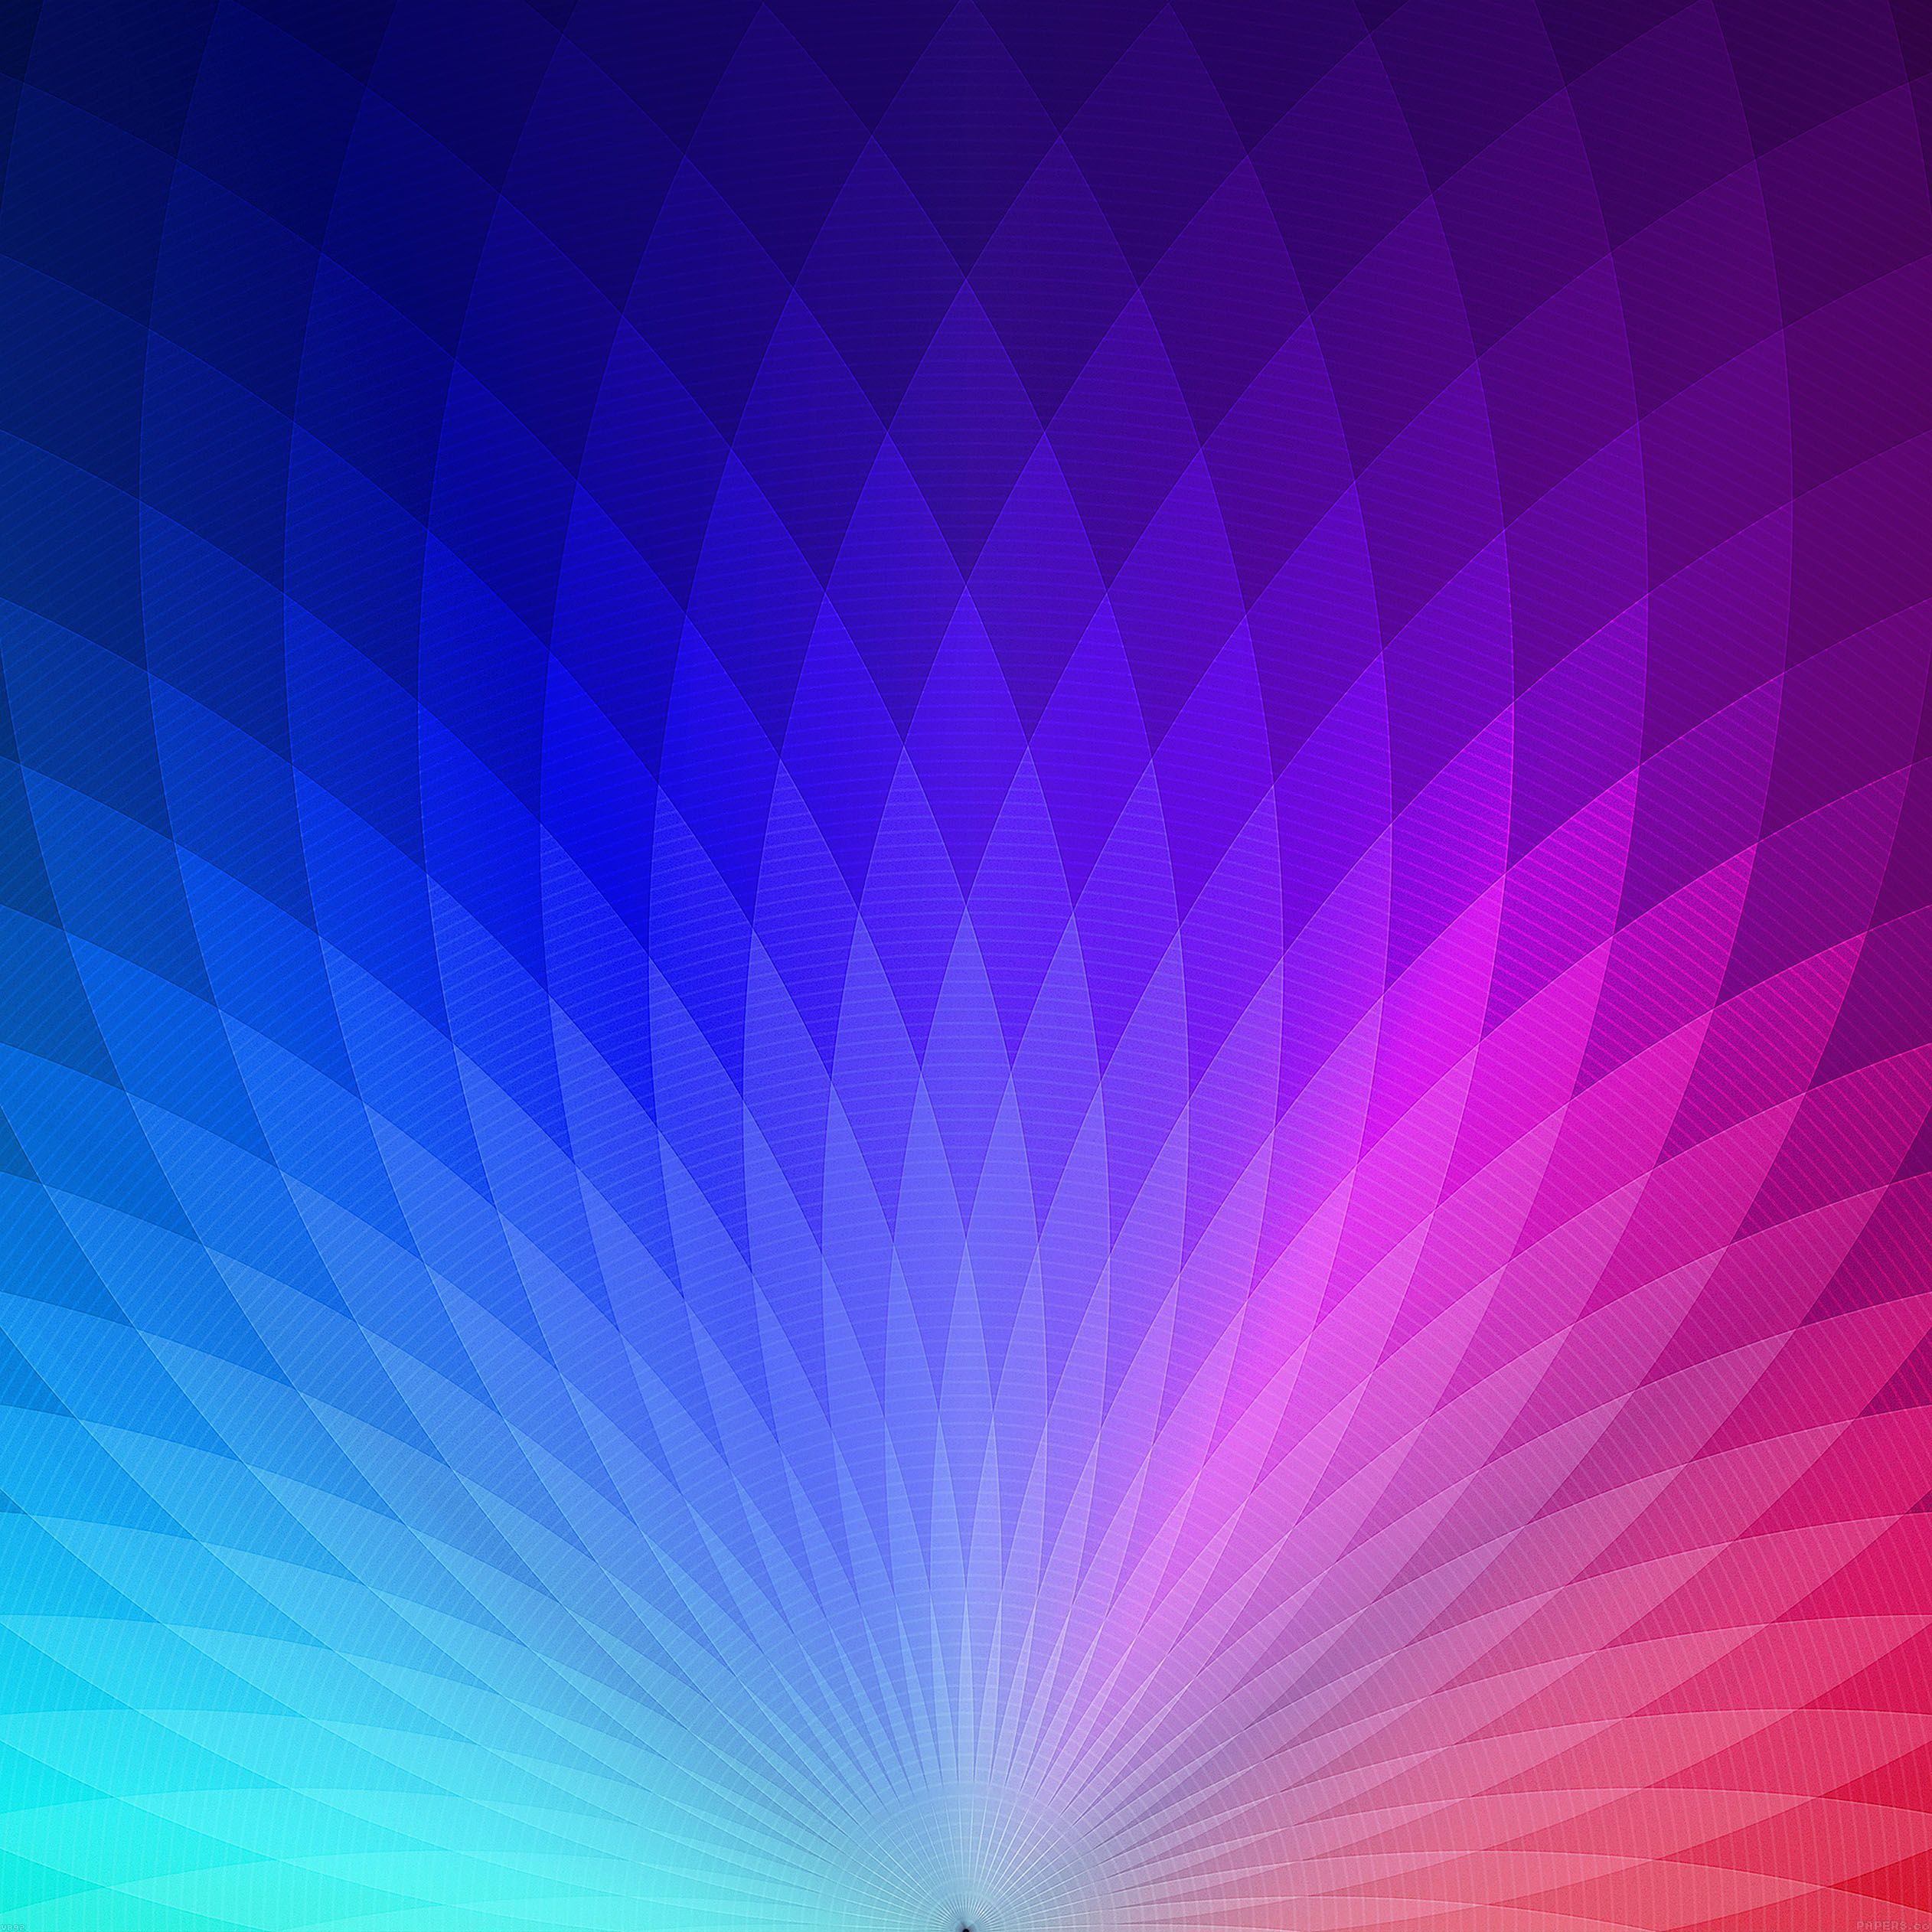 5 fonds d'écran parallax abstract pour iPhone 6 et iPad Retina